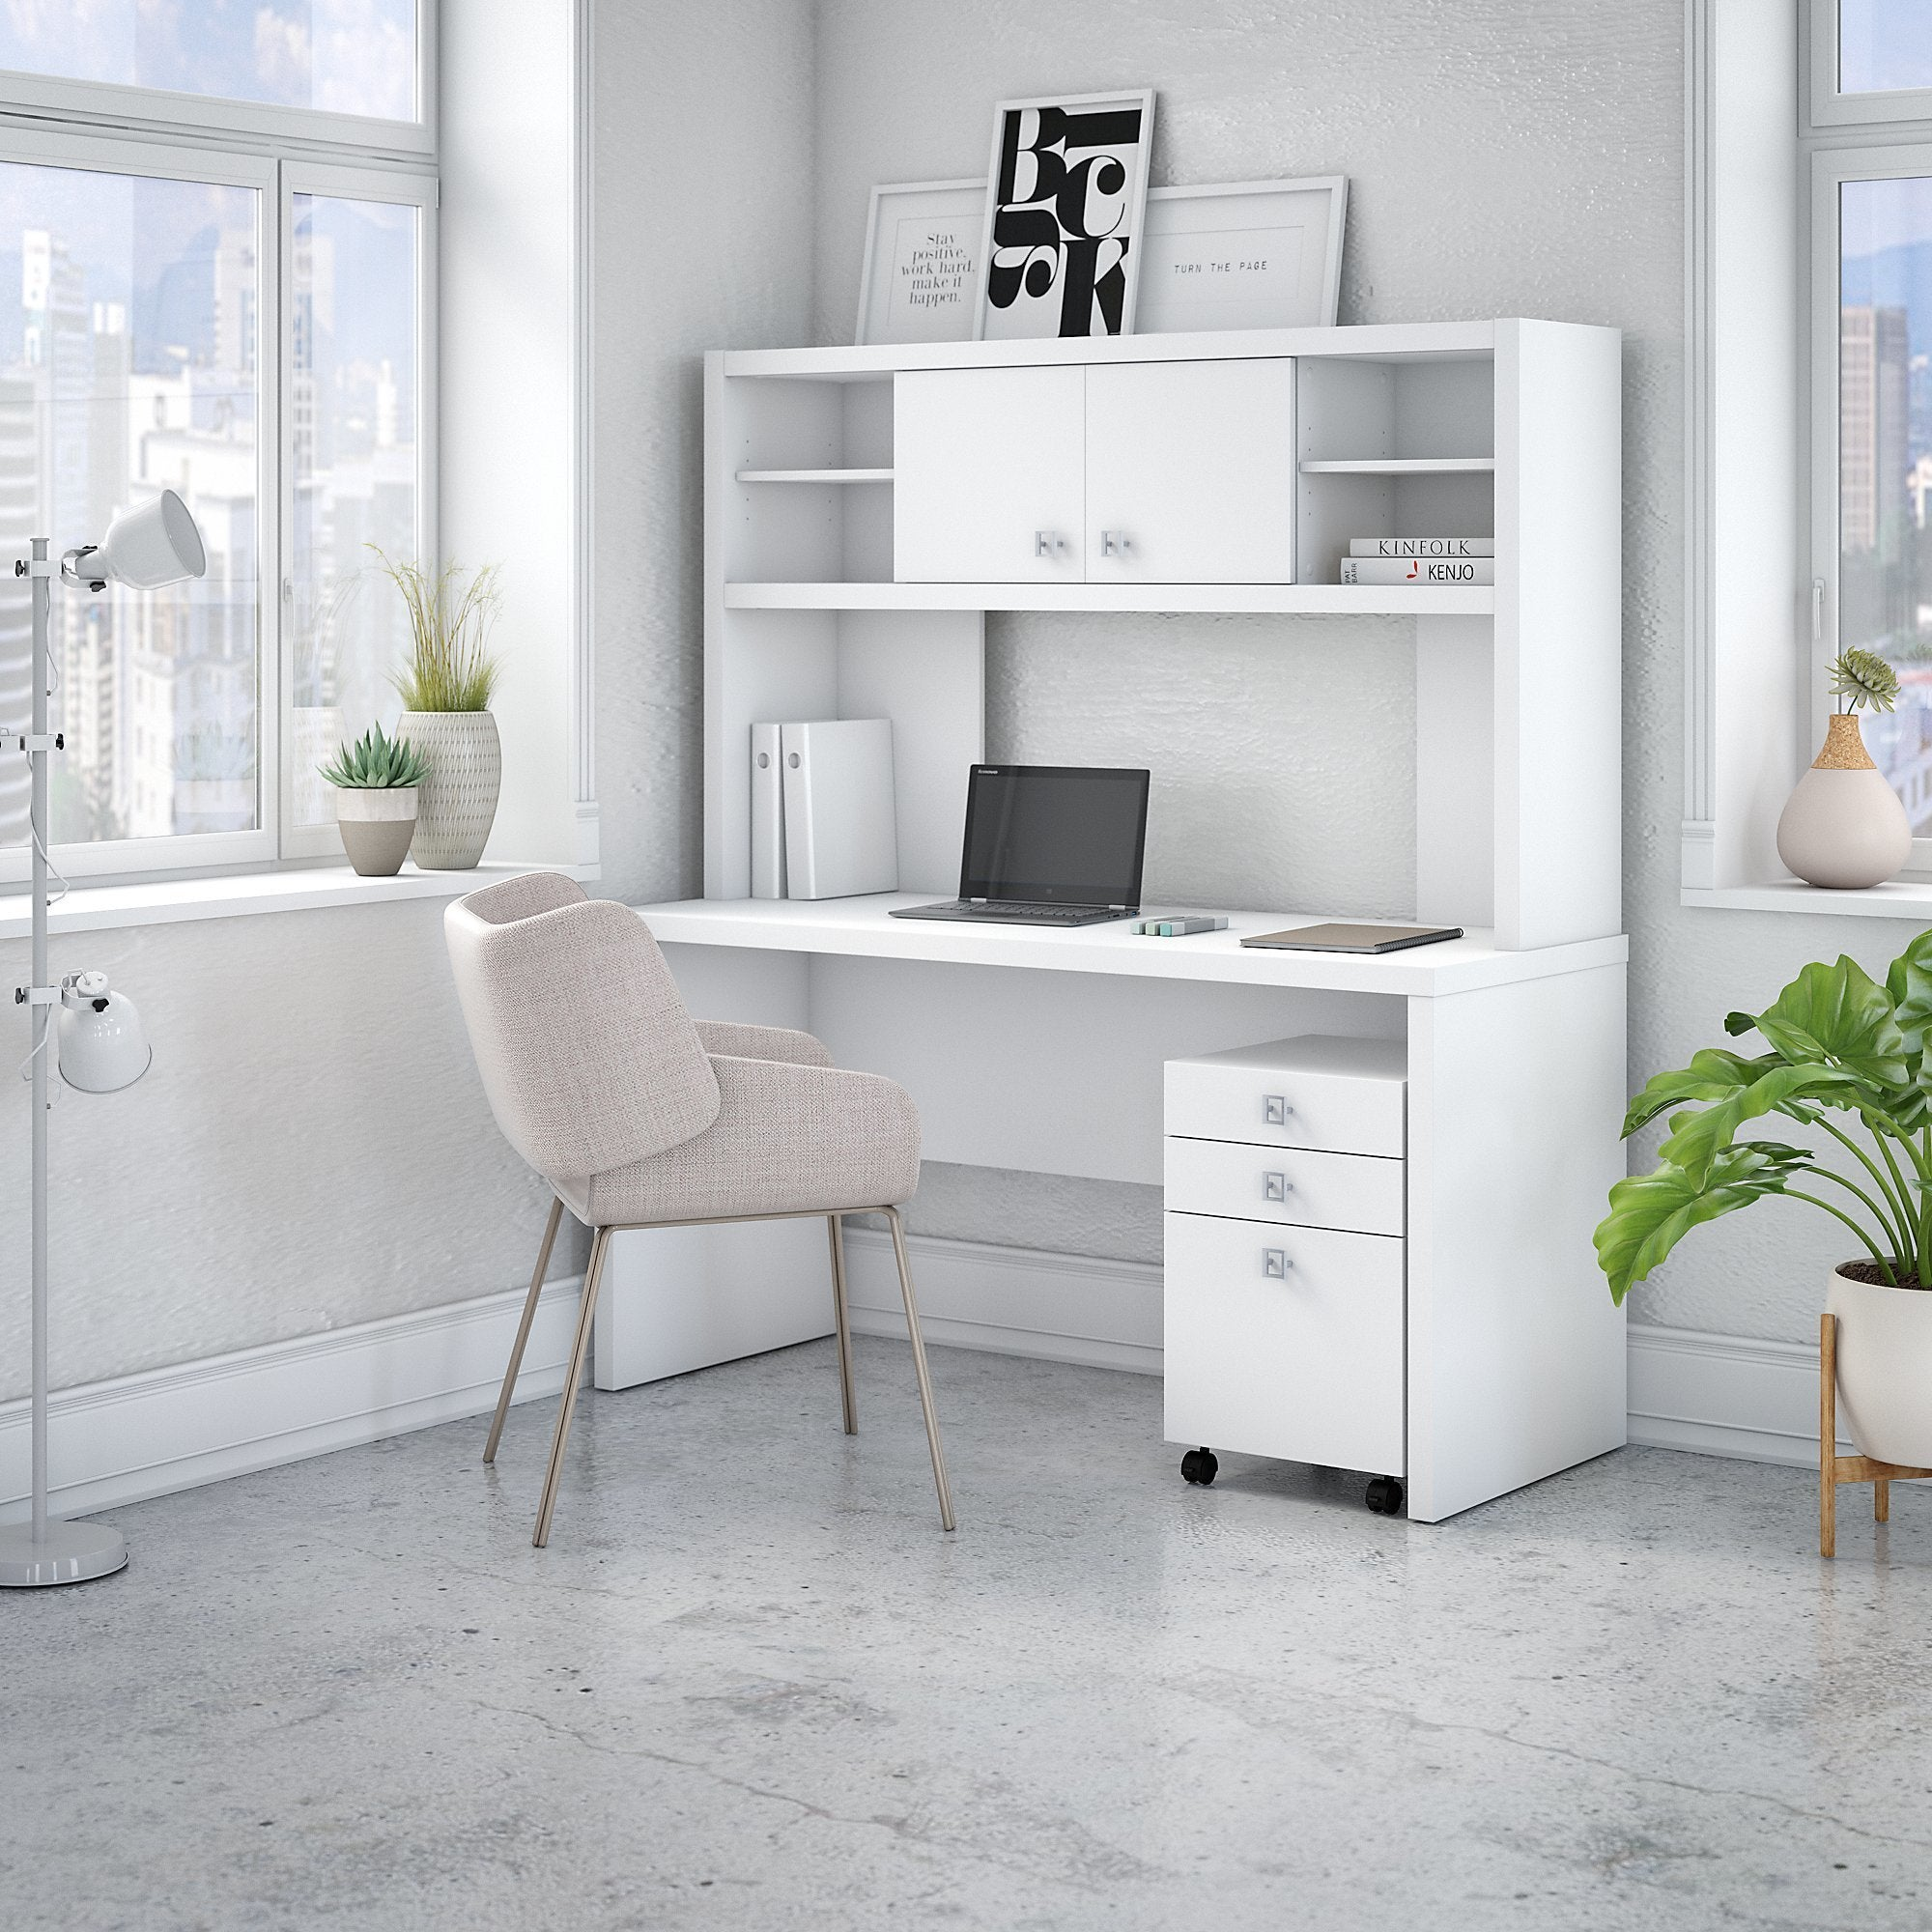 Office by kathy ireland Echo Credenza Desk with Hutch and...